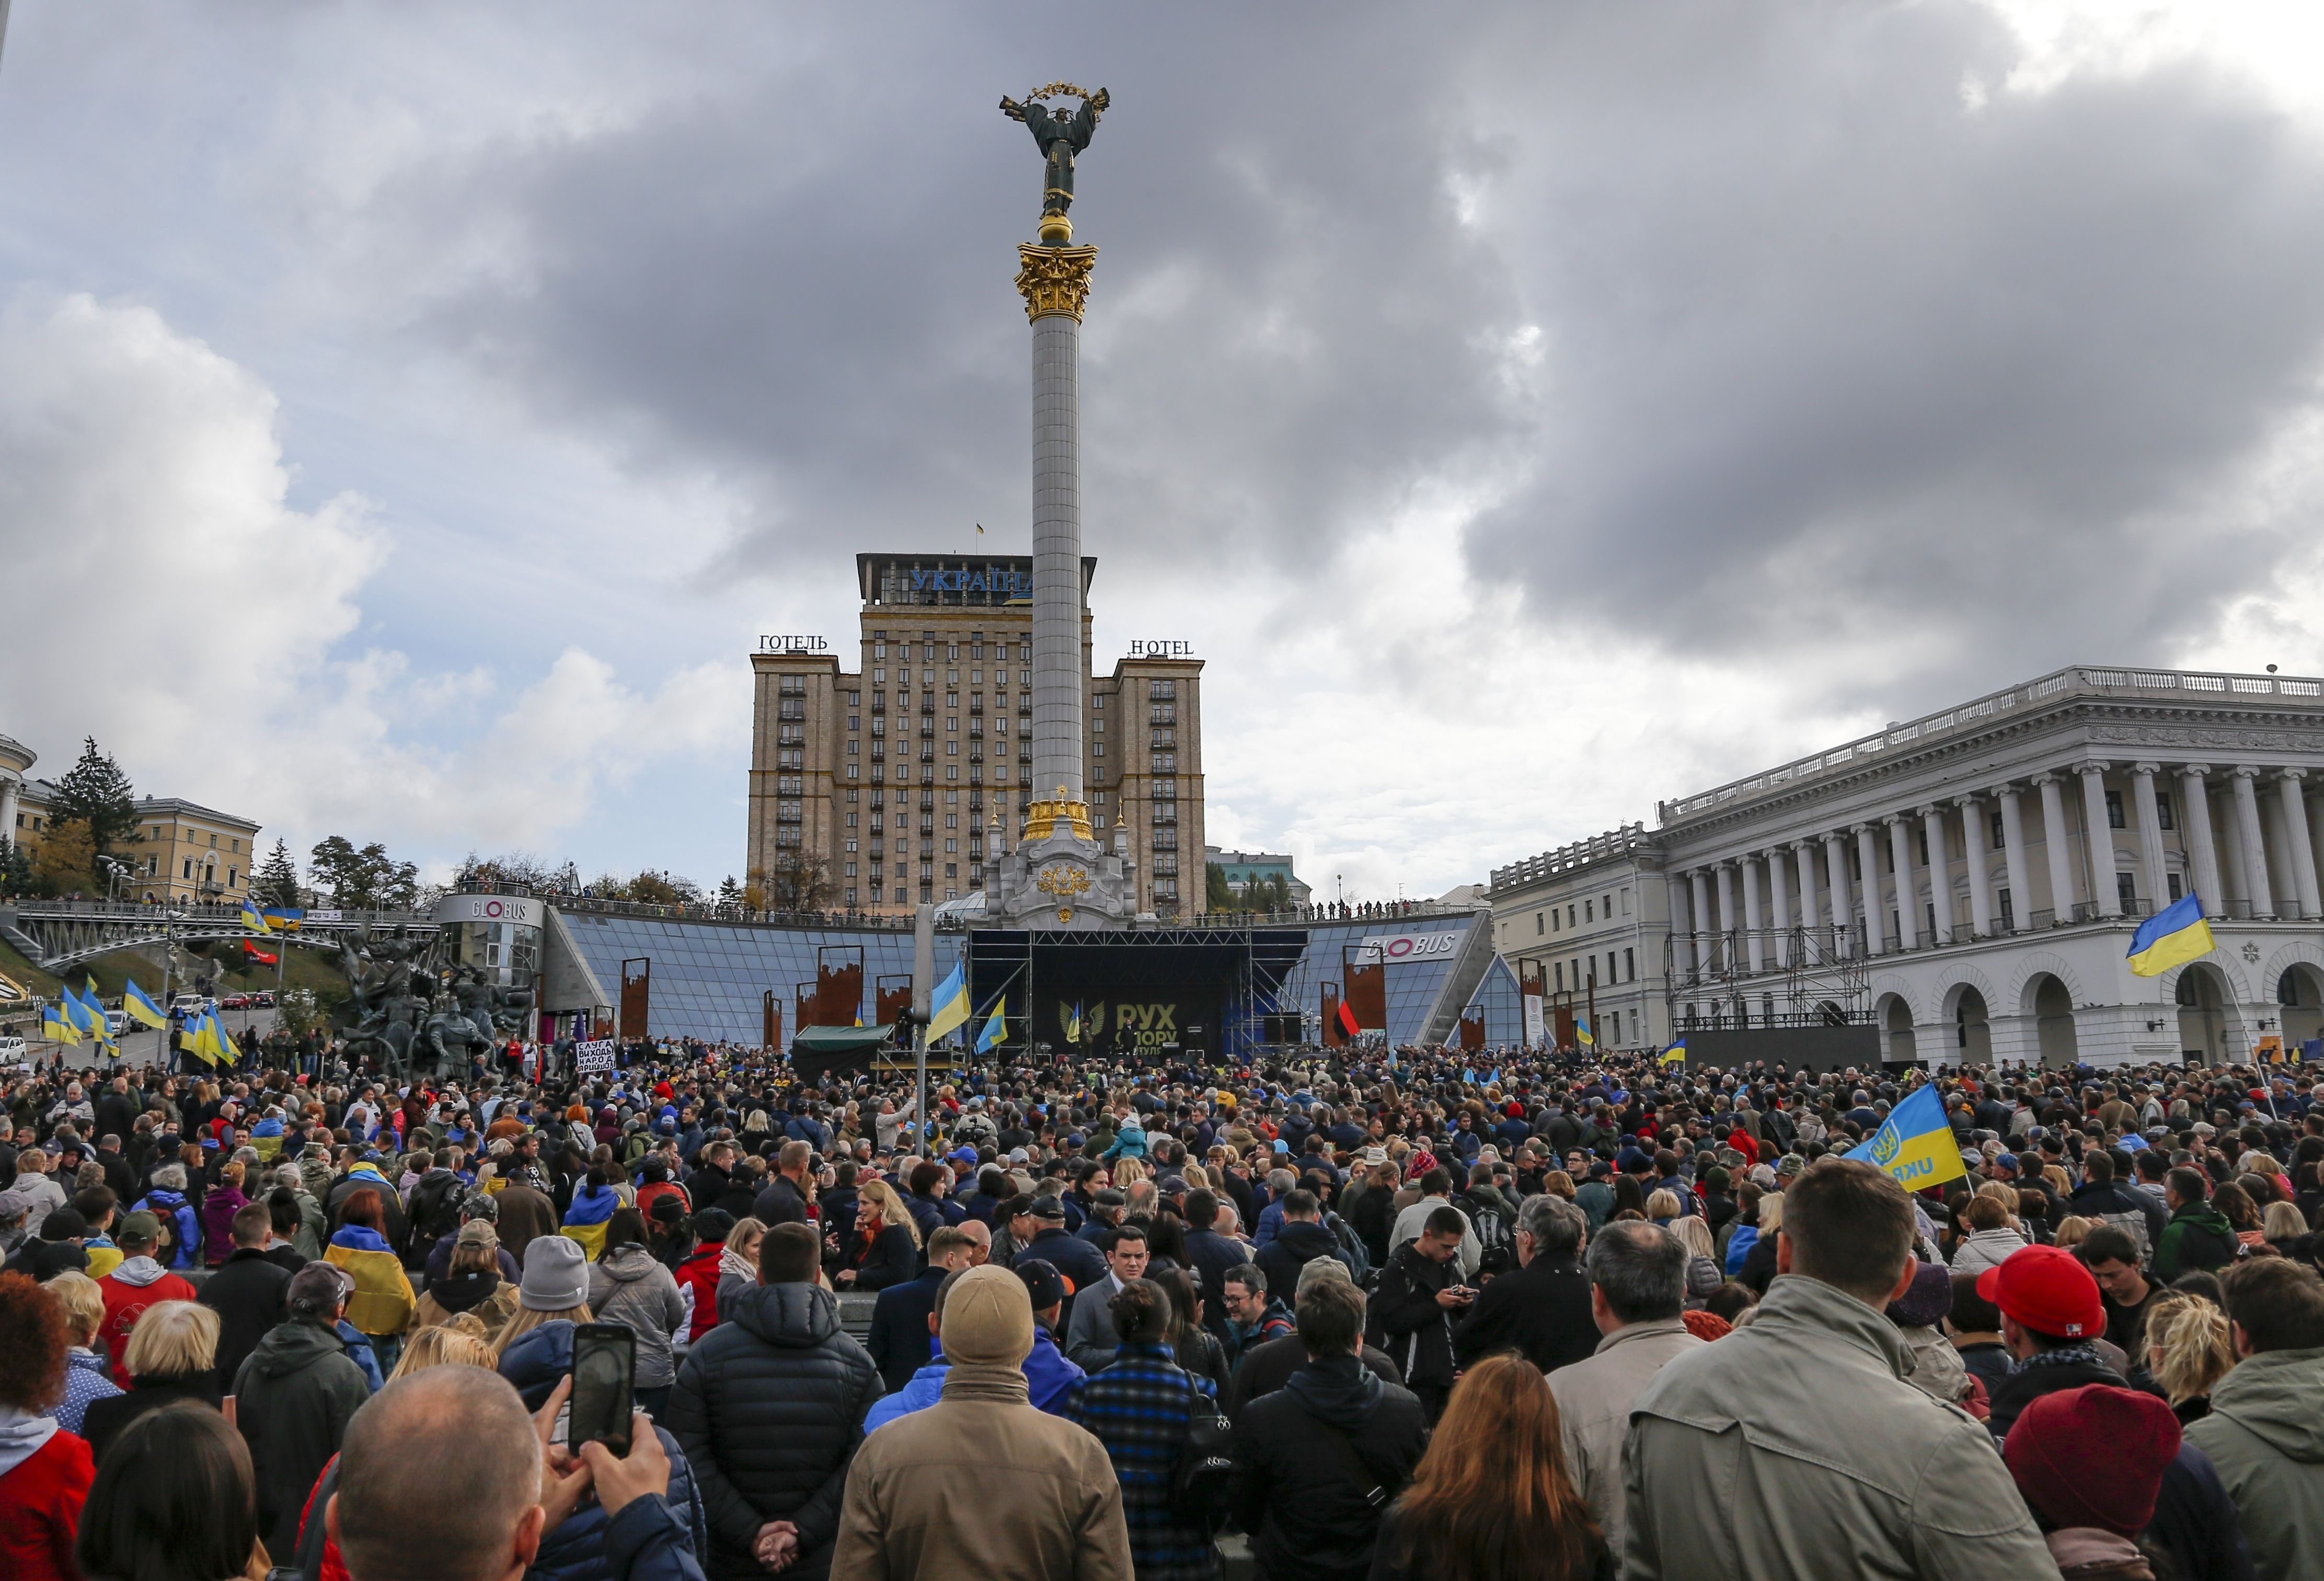 Protesters in Ukraine rally against election in rebel east